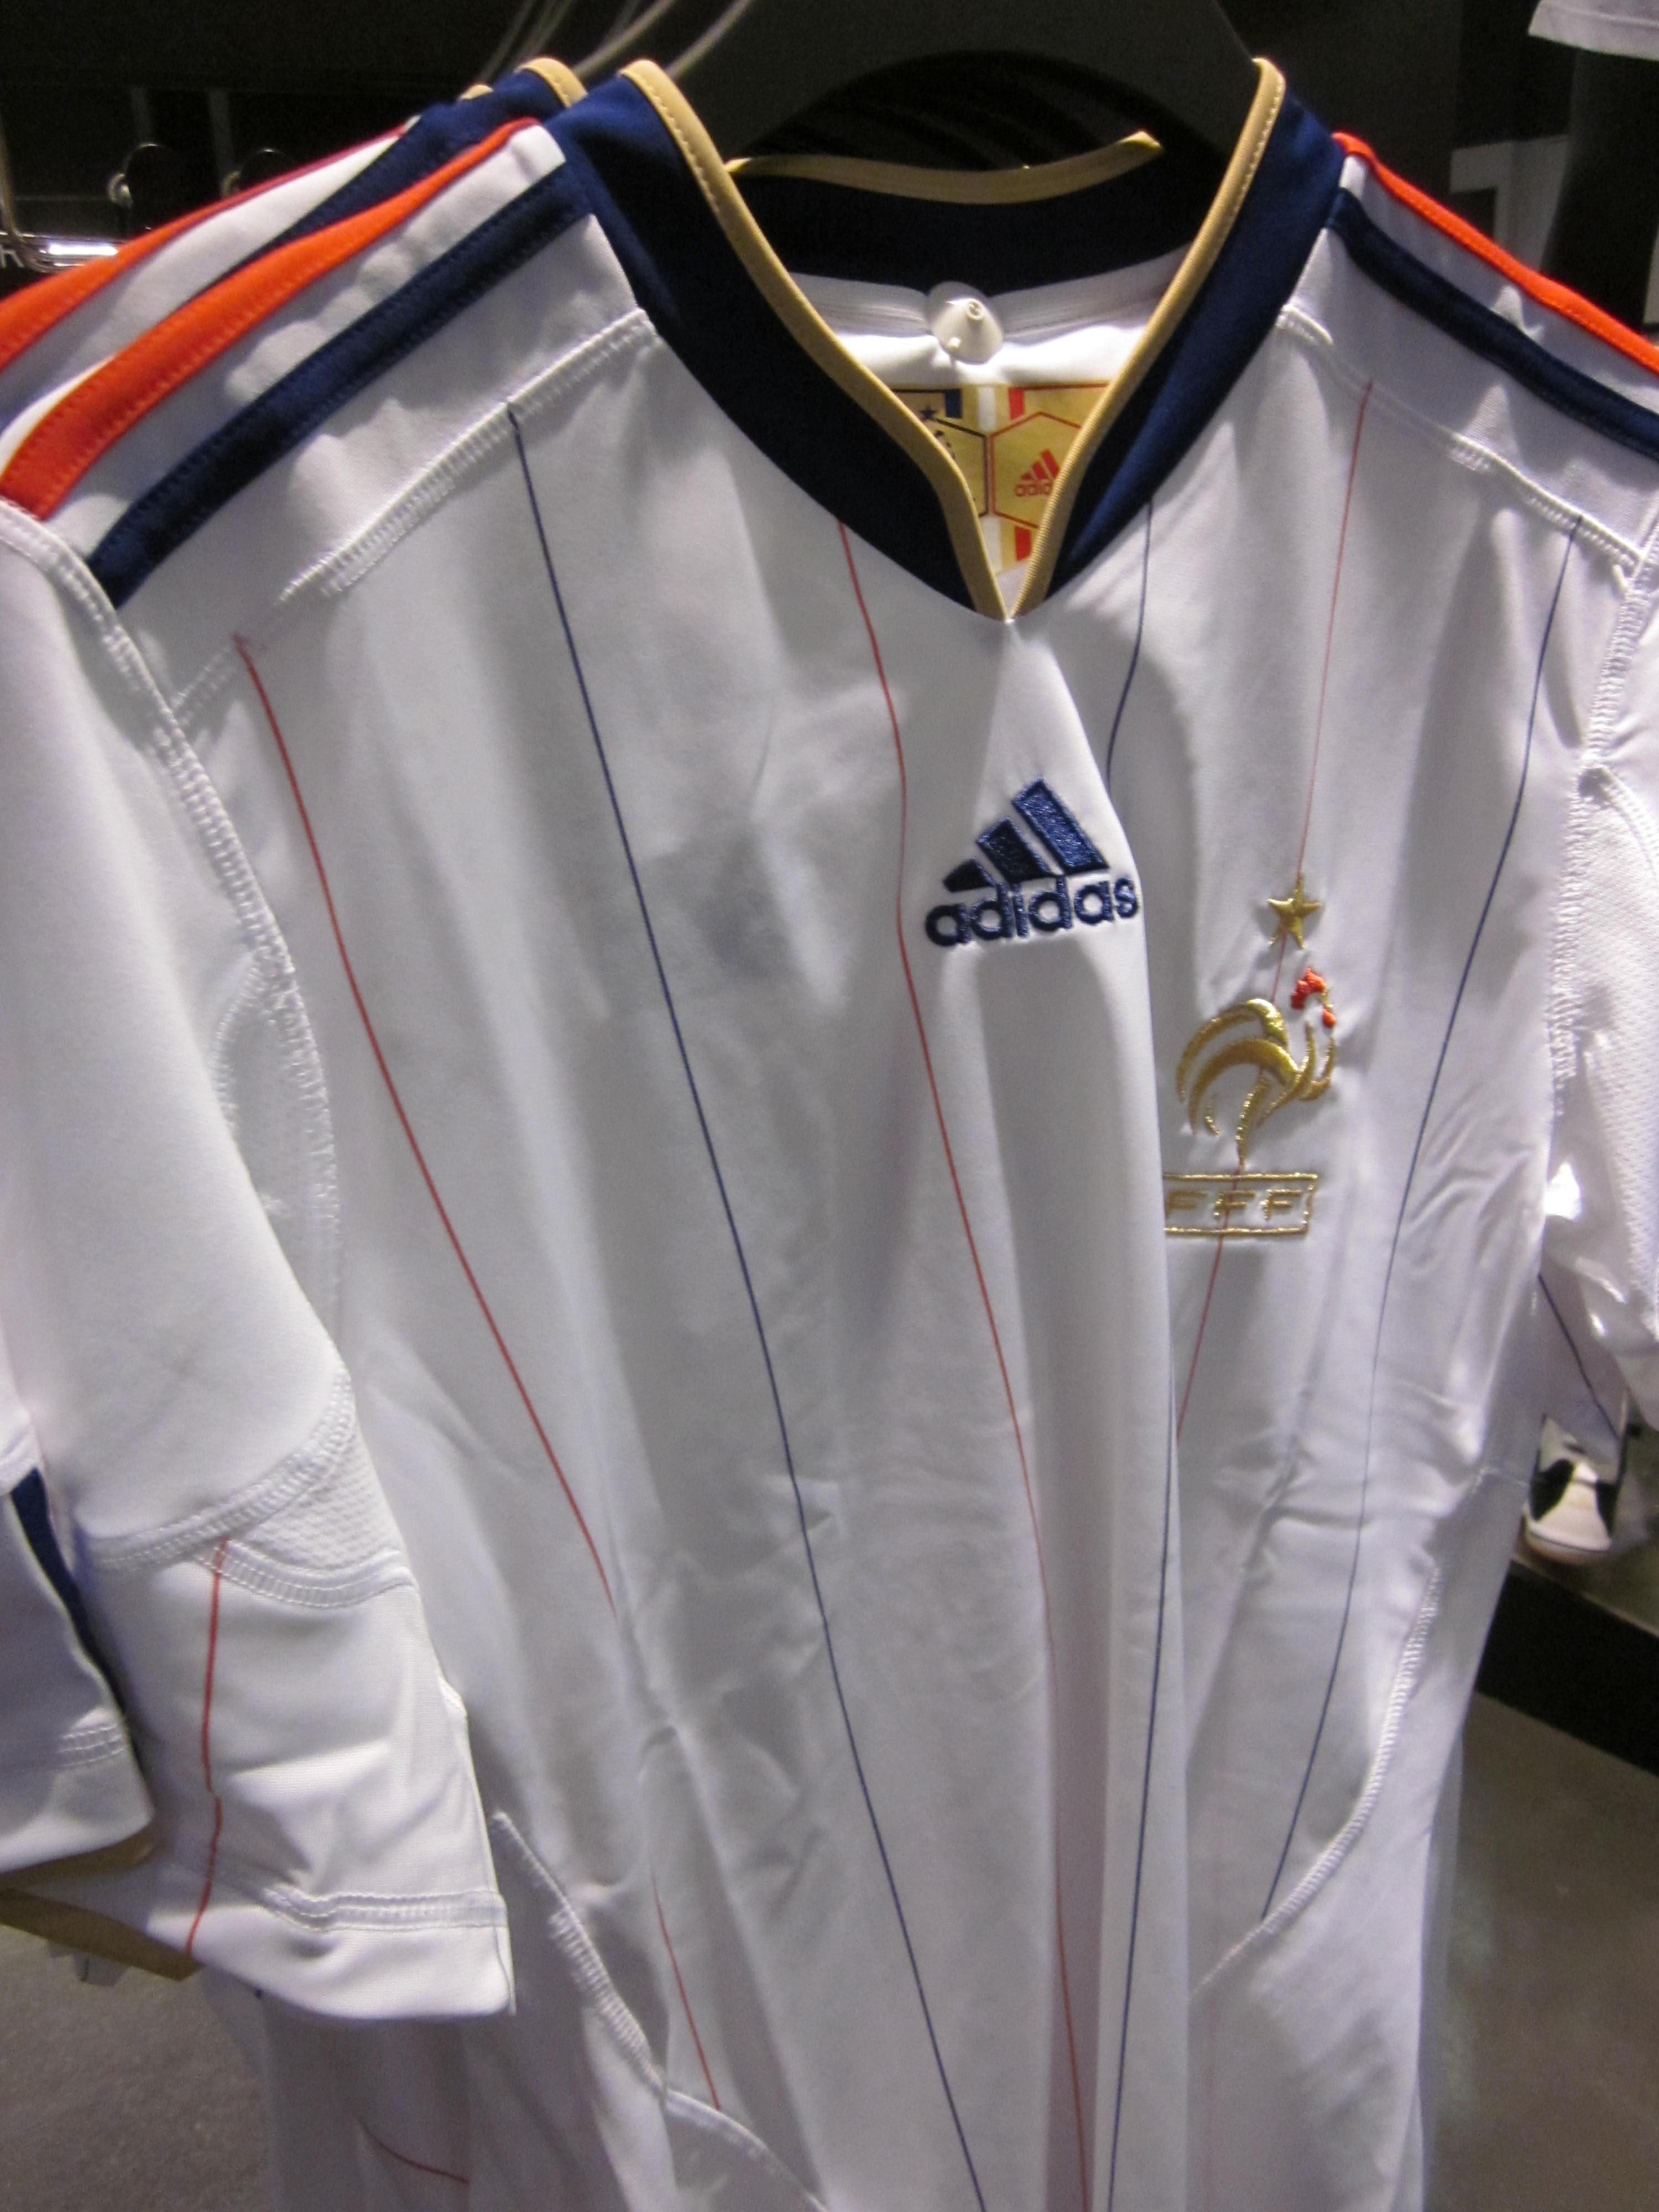 newest collection 165e5 bbd4e File:Adidas France national football team away jersey.JPG ...